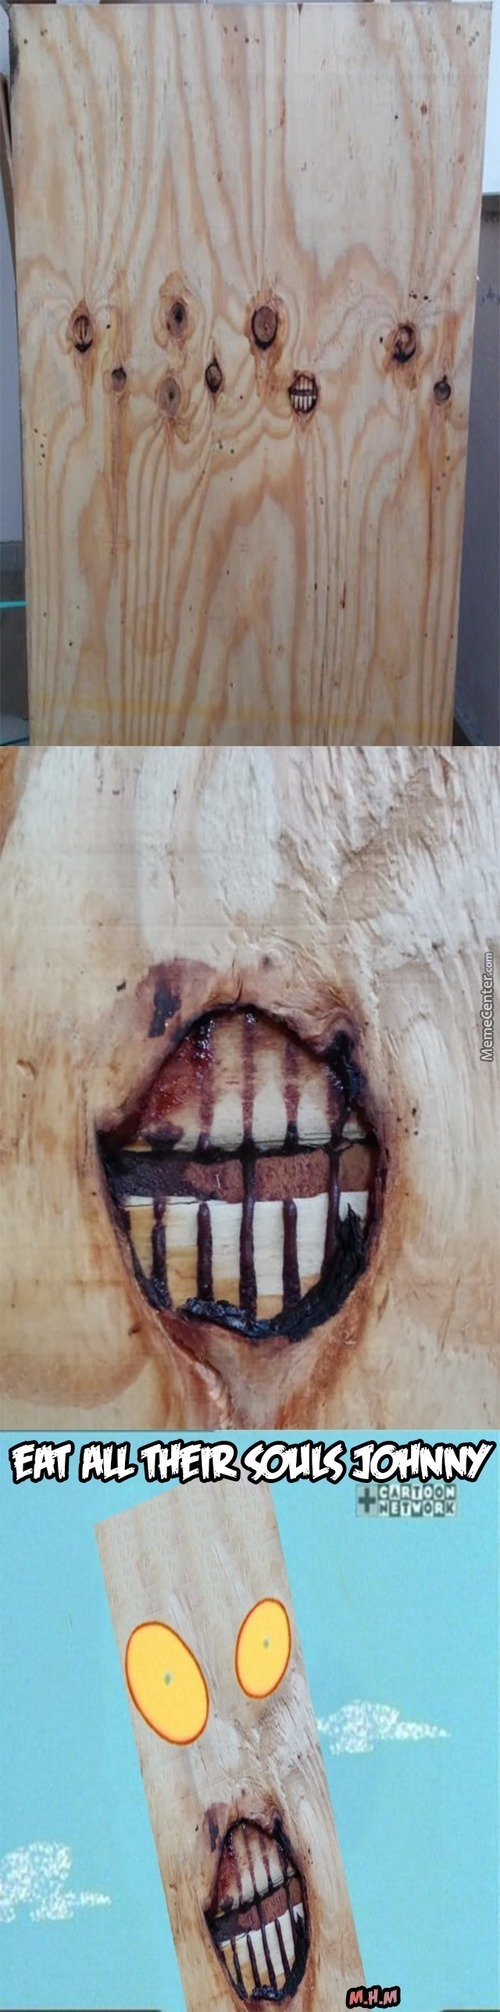 Plank Stop That, You Are Scaring Me